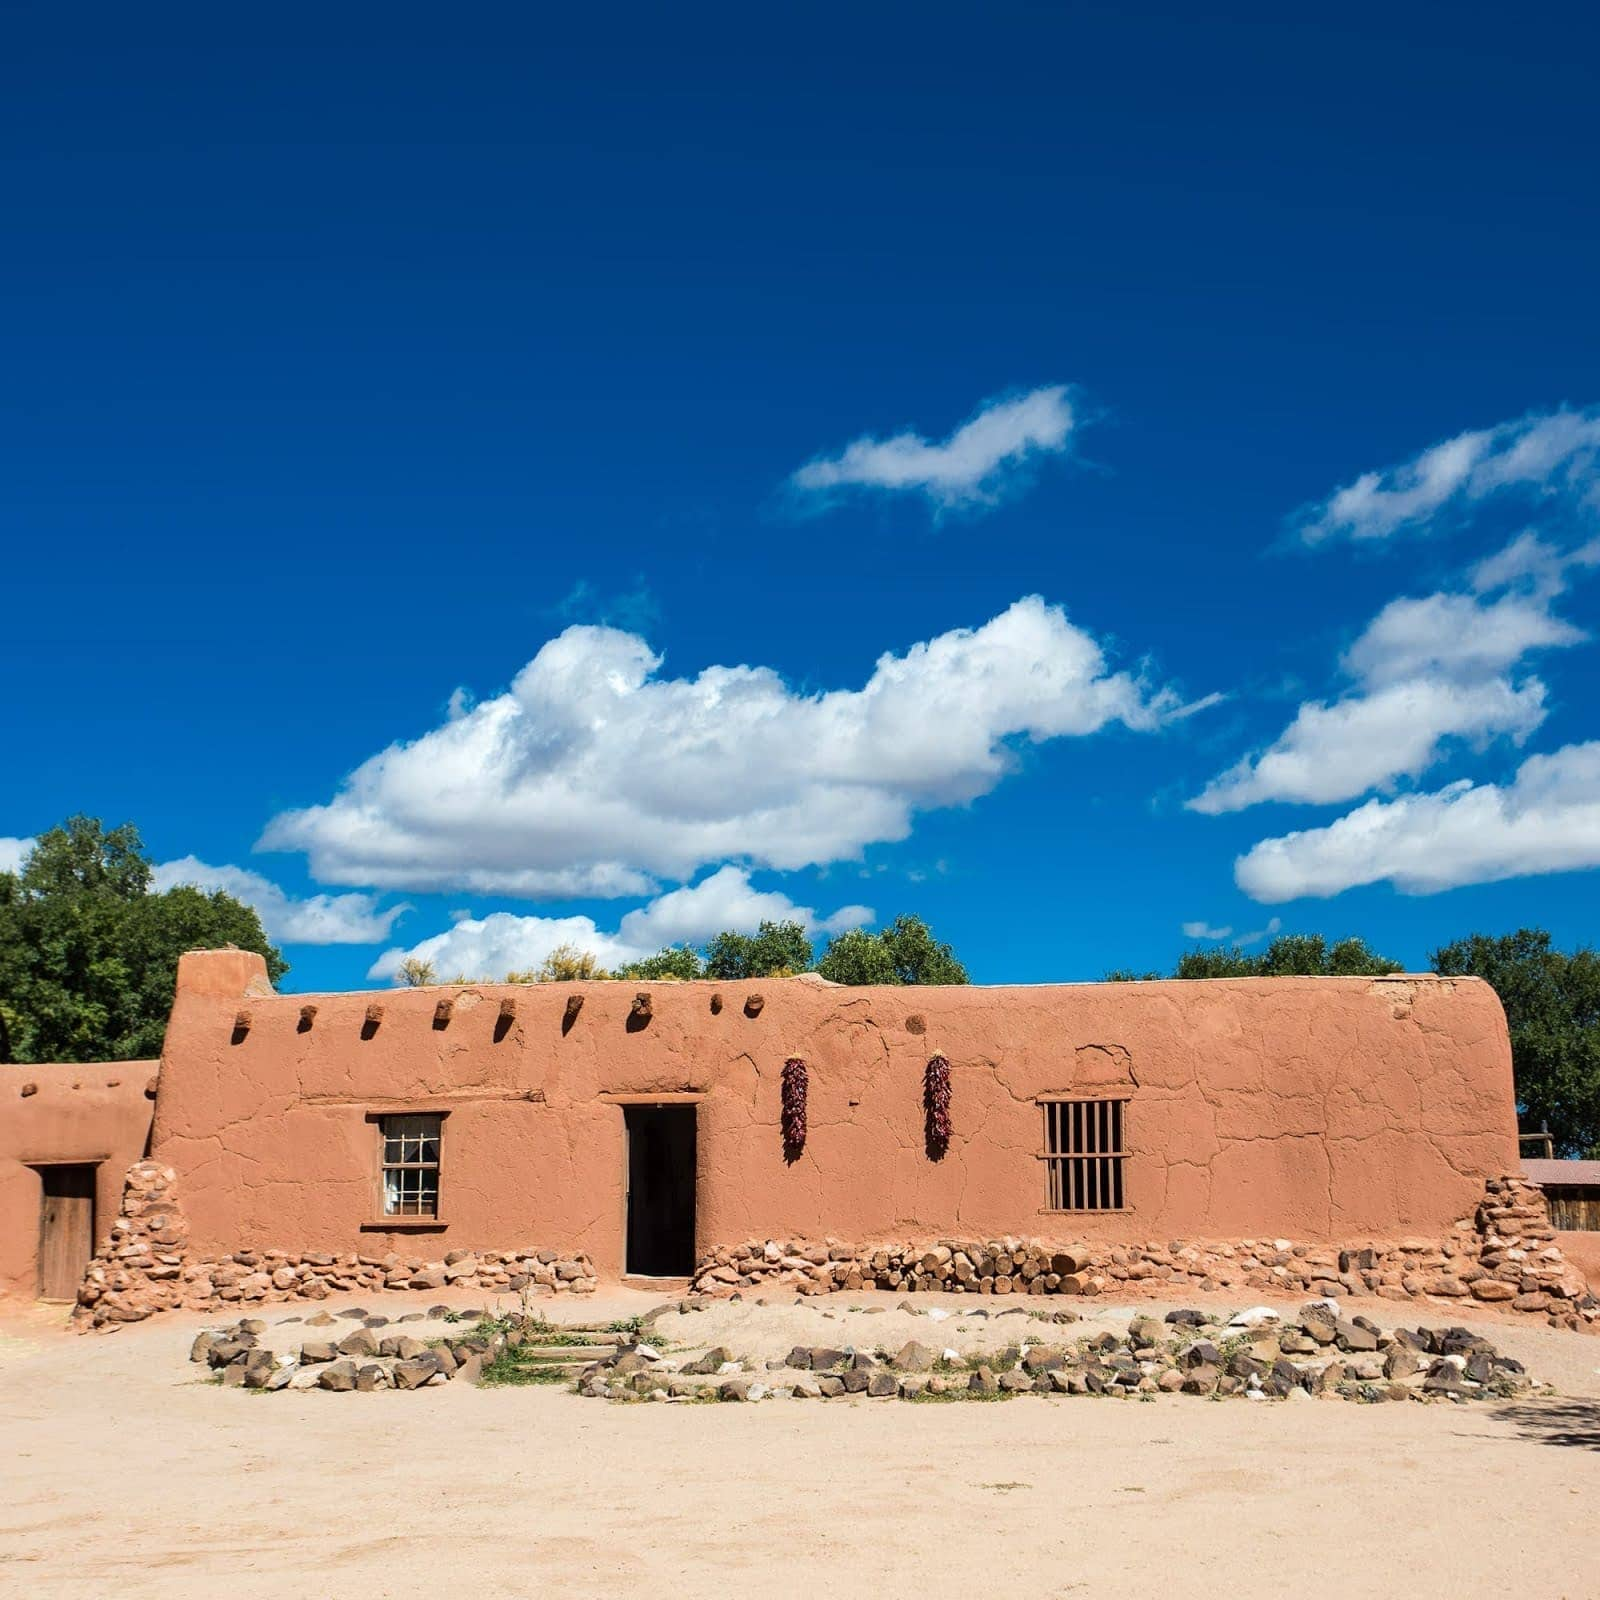 El Rancho de las Golondrinas Santa Fe New Mexico by Laurence Norah-6